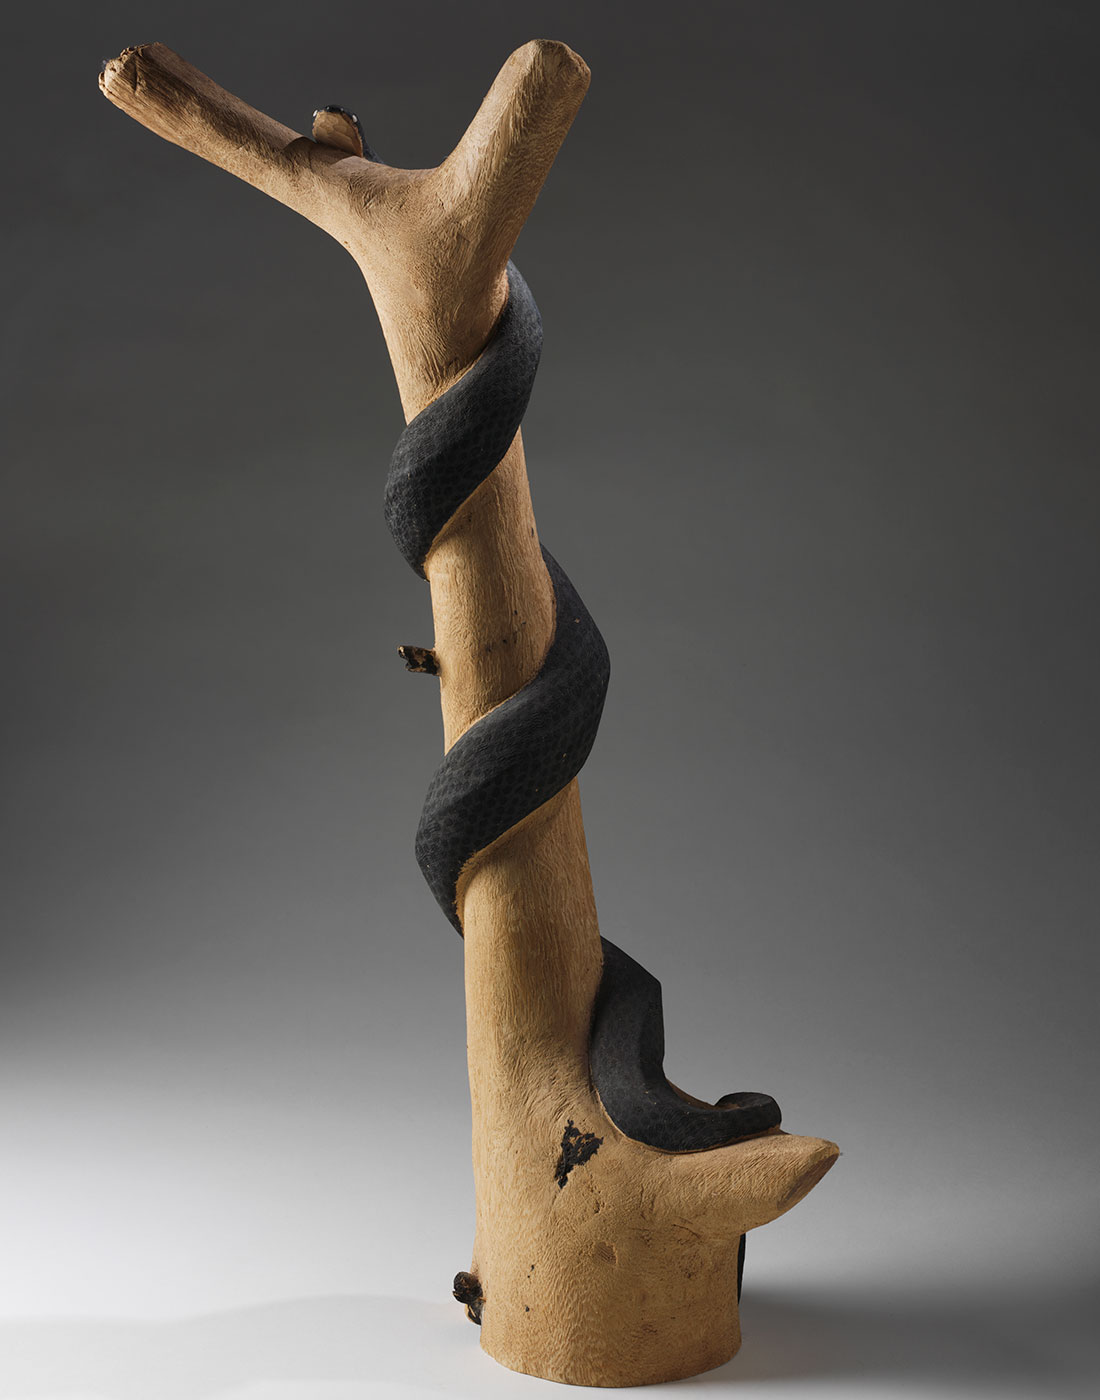 Wooden sculpture of a snake. - click to view larger image